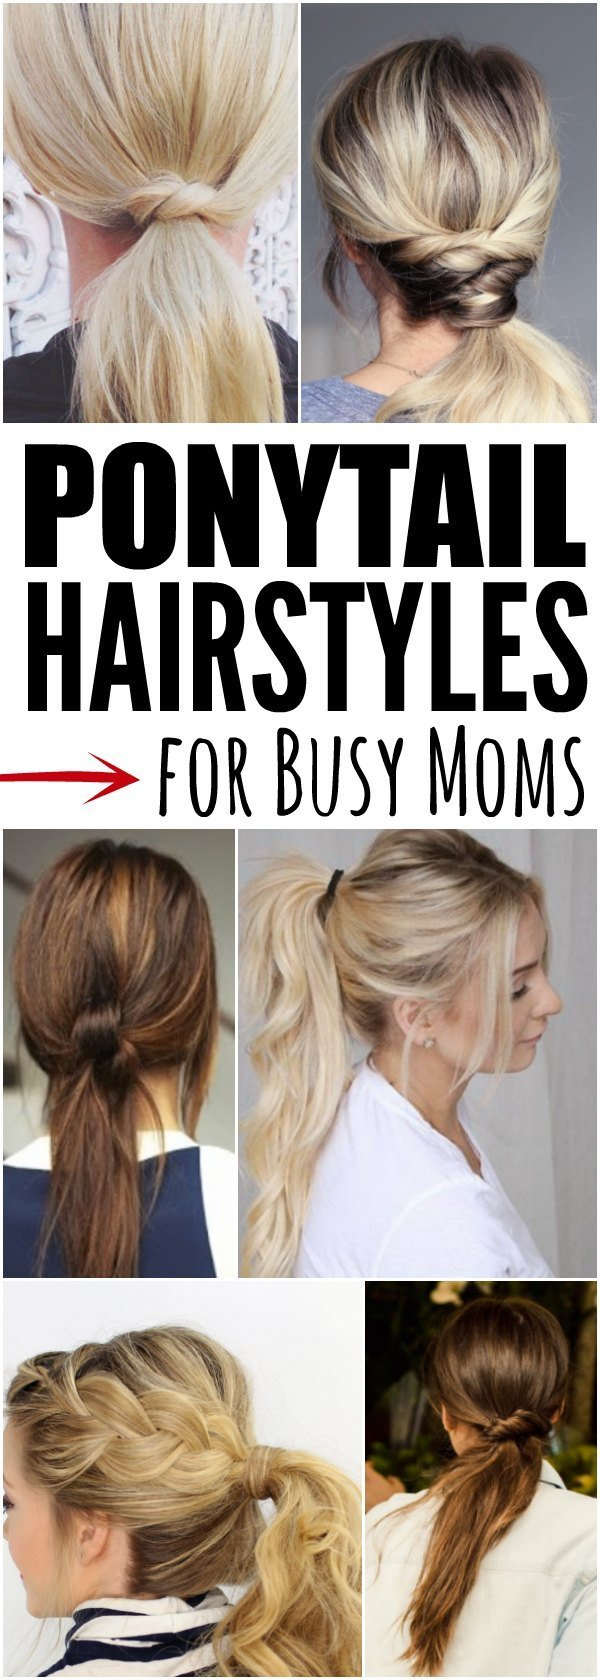 New Quick And Easy Ponytail Hairstyles For Busy Moms Ideas With Pictures